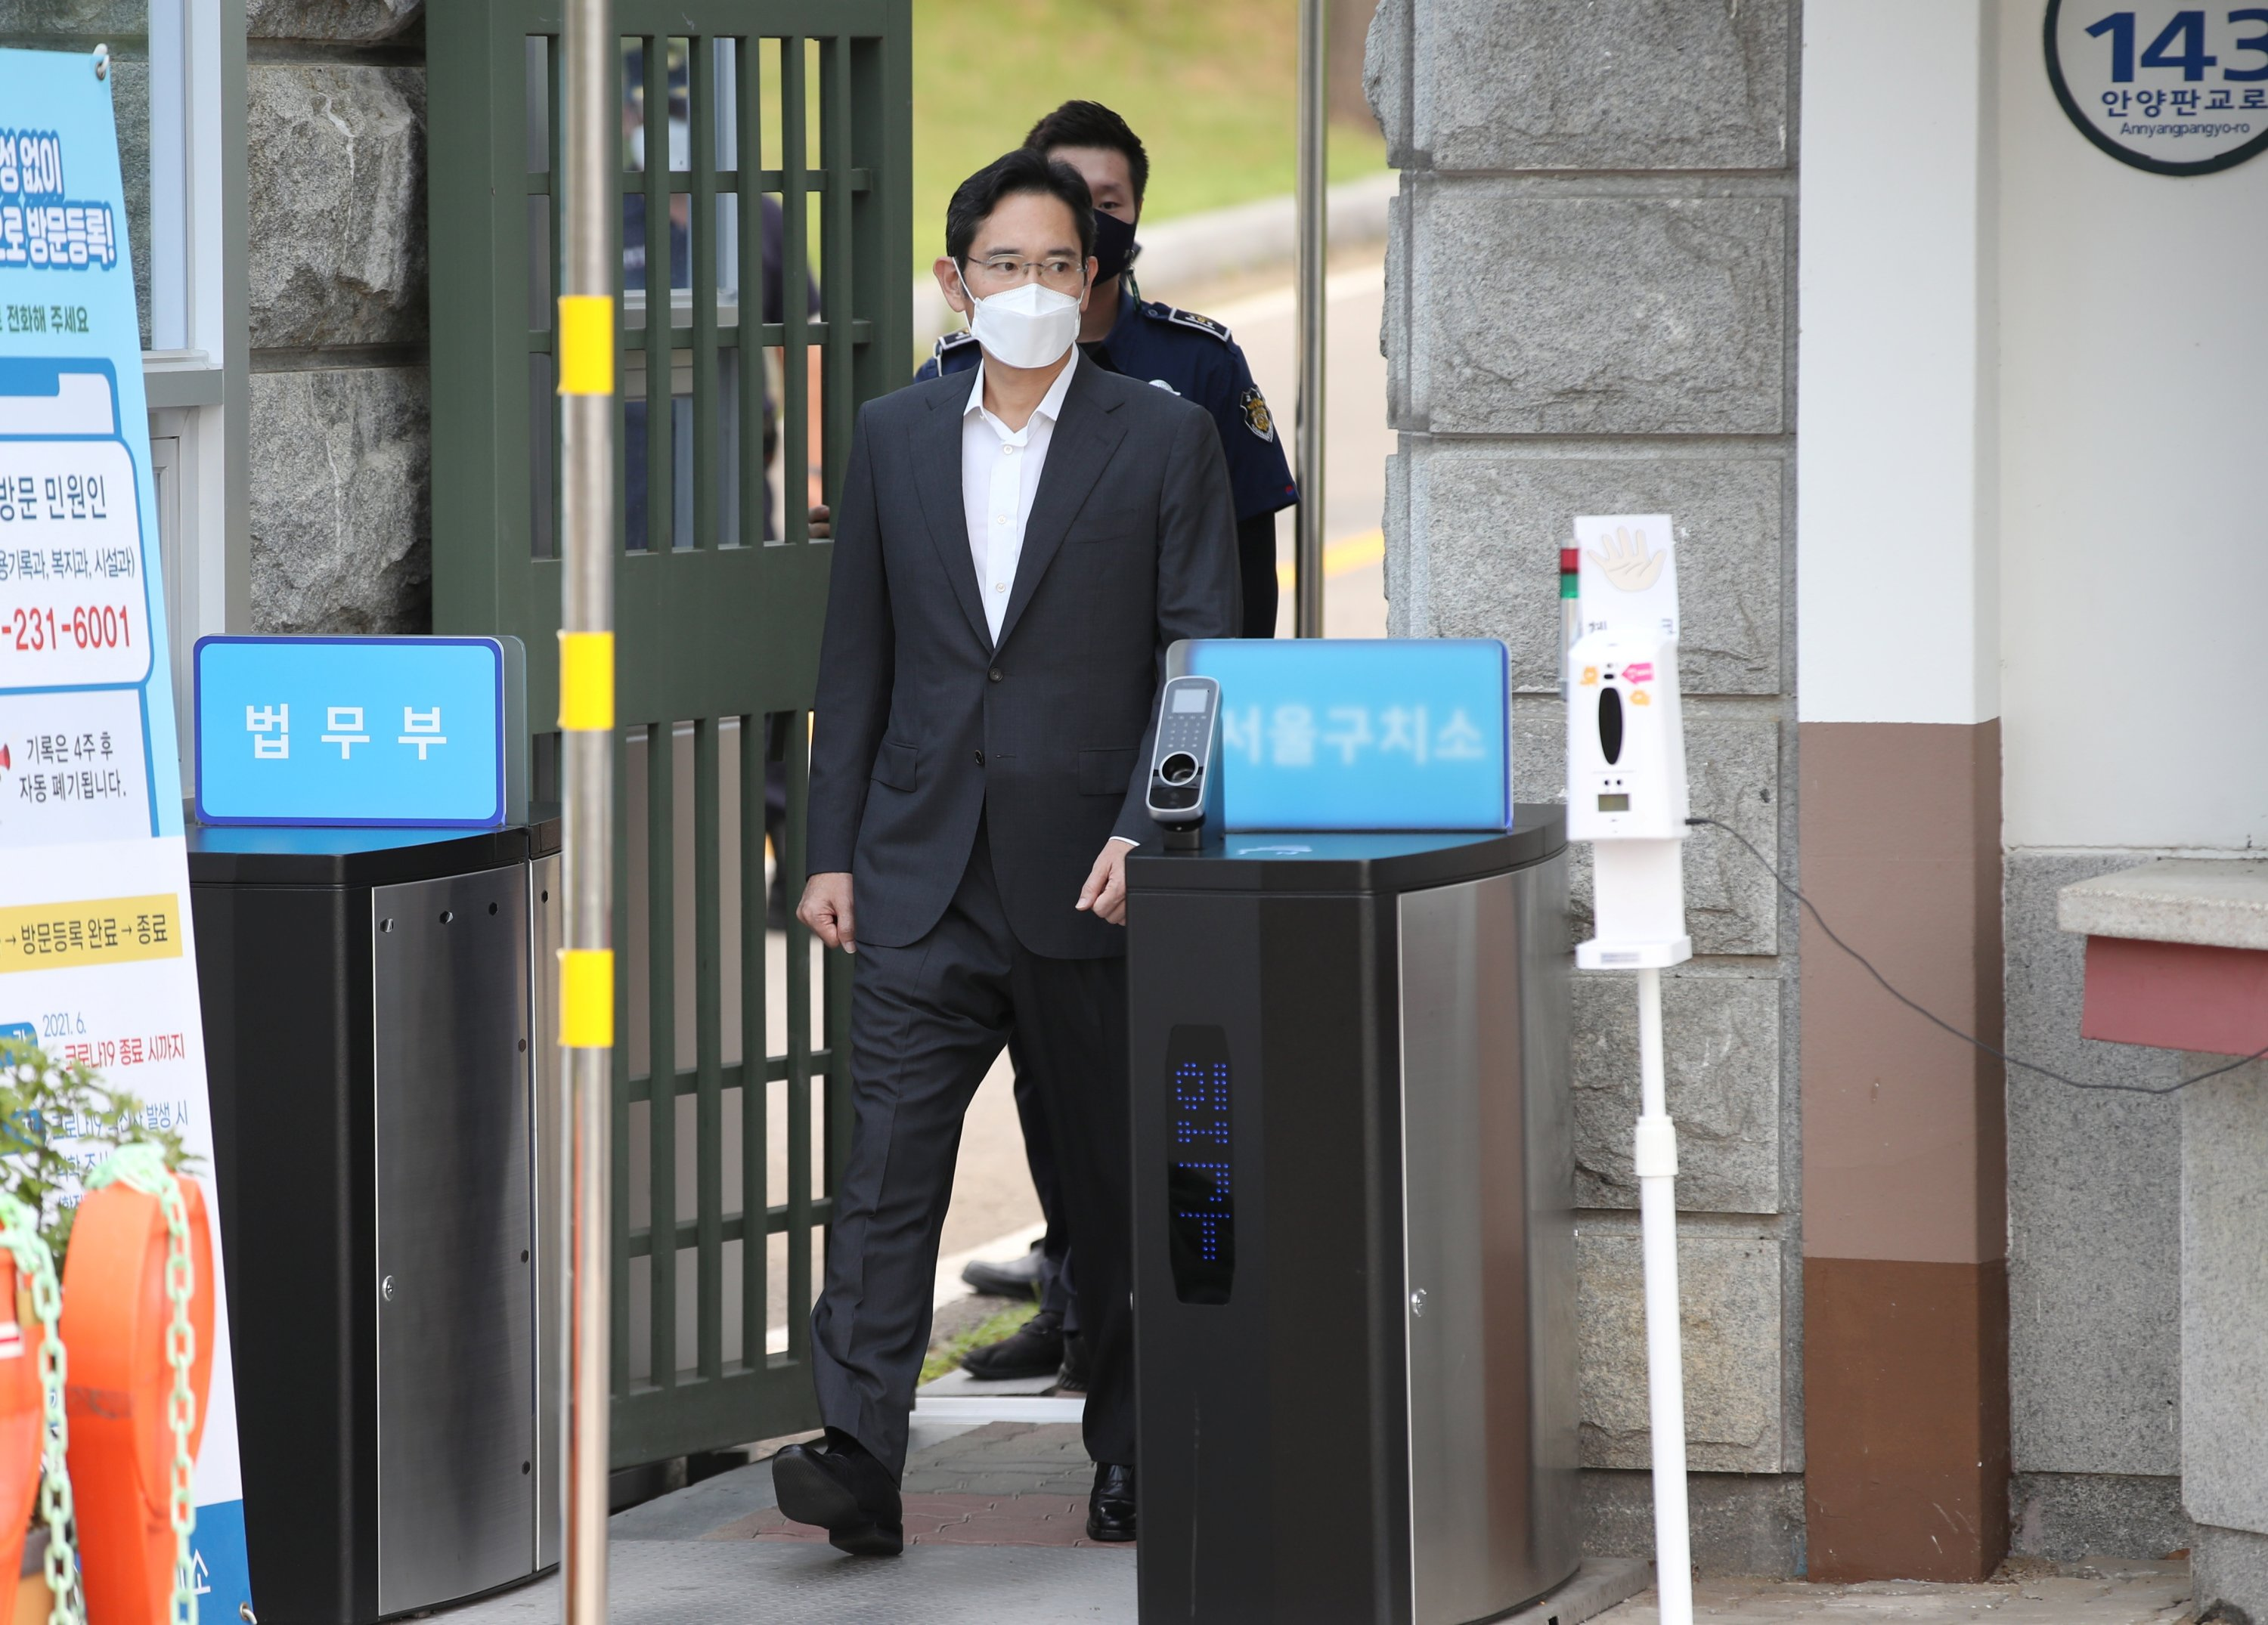 Samsung Electronics vice chairperson, Lee Jae-yong, walks as he is released on parole from Seoul Detention Center in Uiwang, South Korea, Aug. 13, 2021. (Reuters Photo)